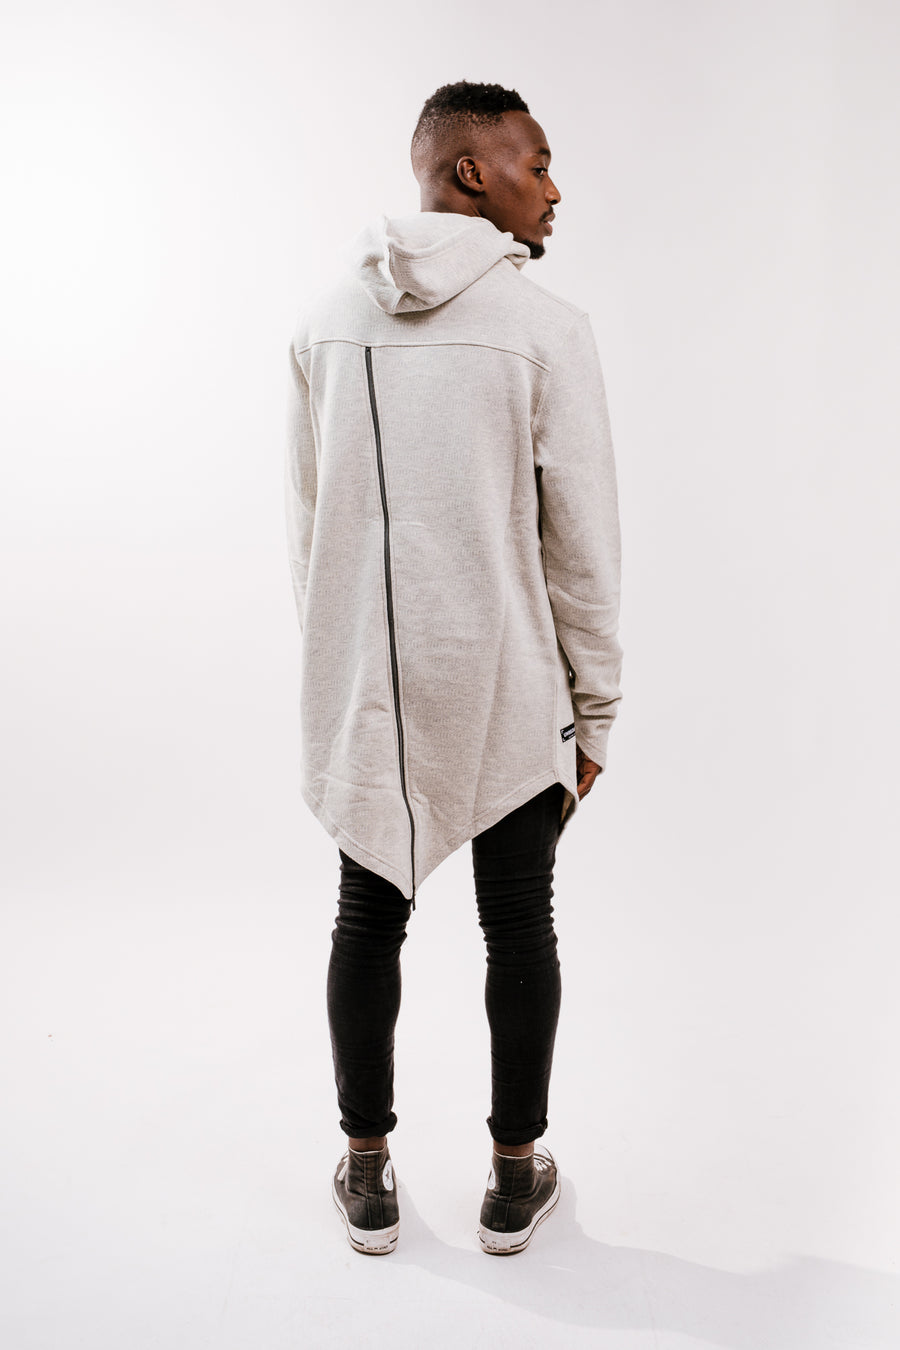 MEN'S ASYMMETRIC HOODED SWEATSHIRT